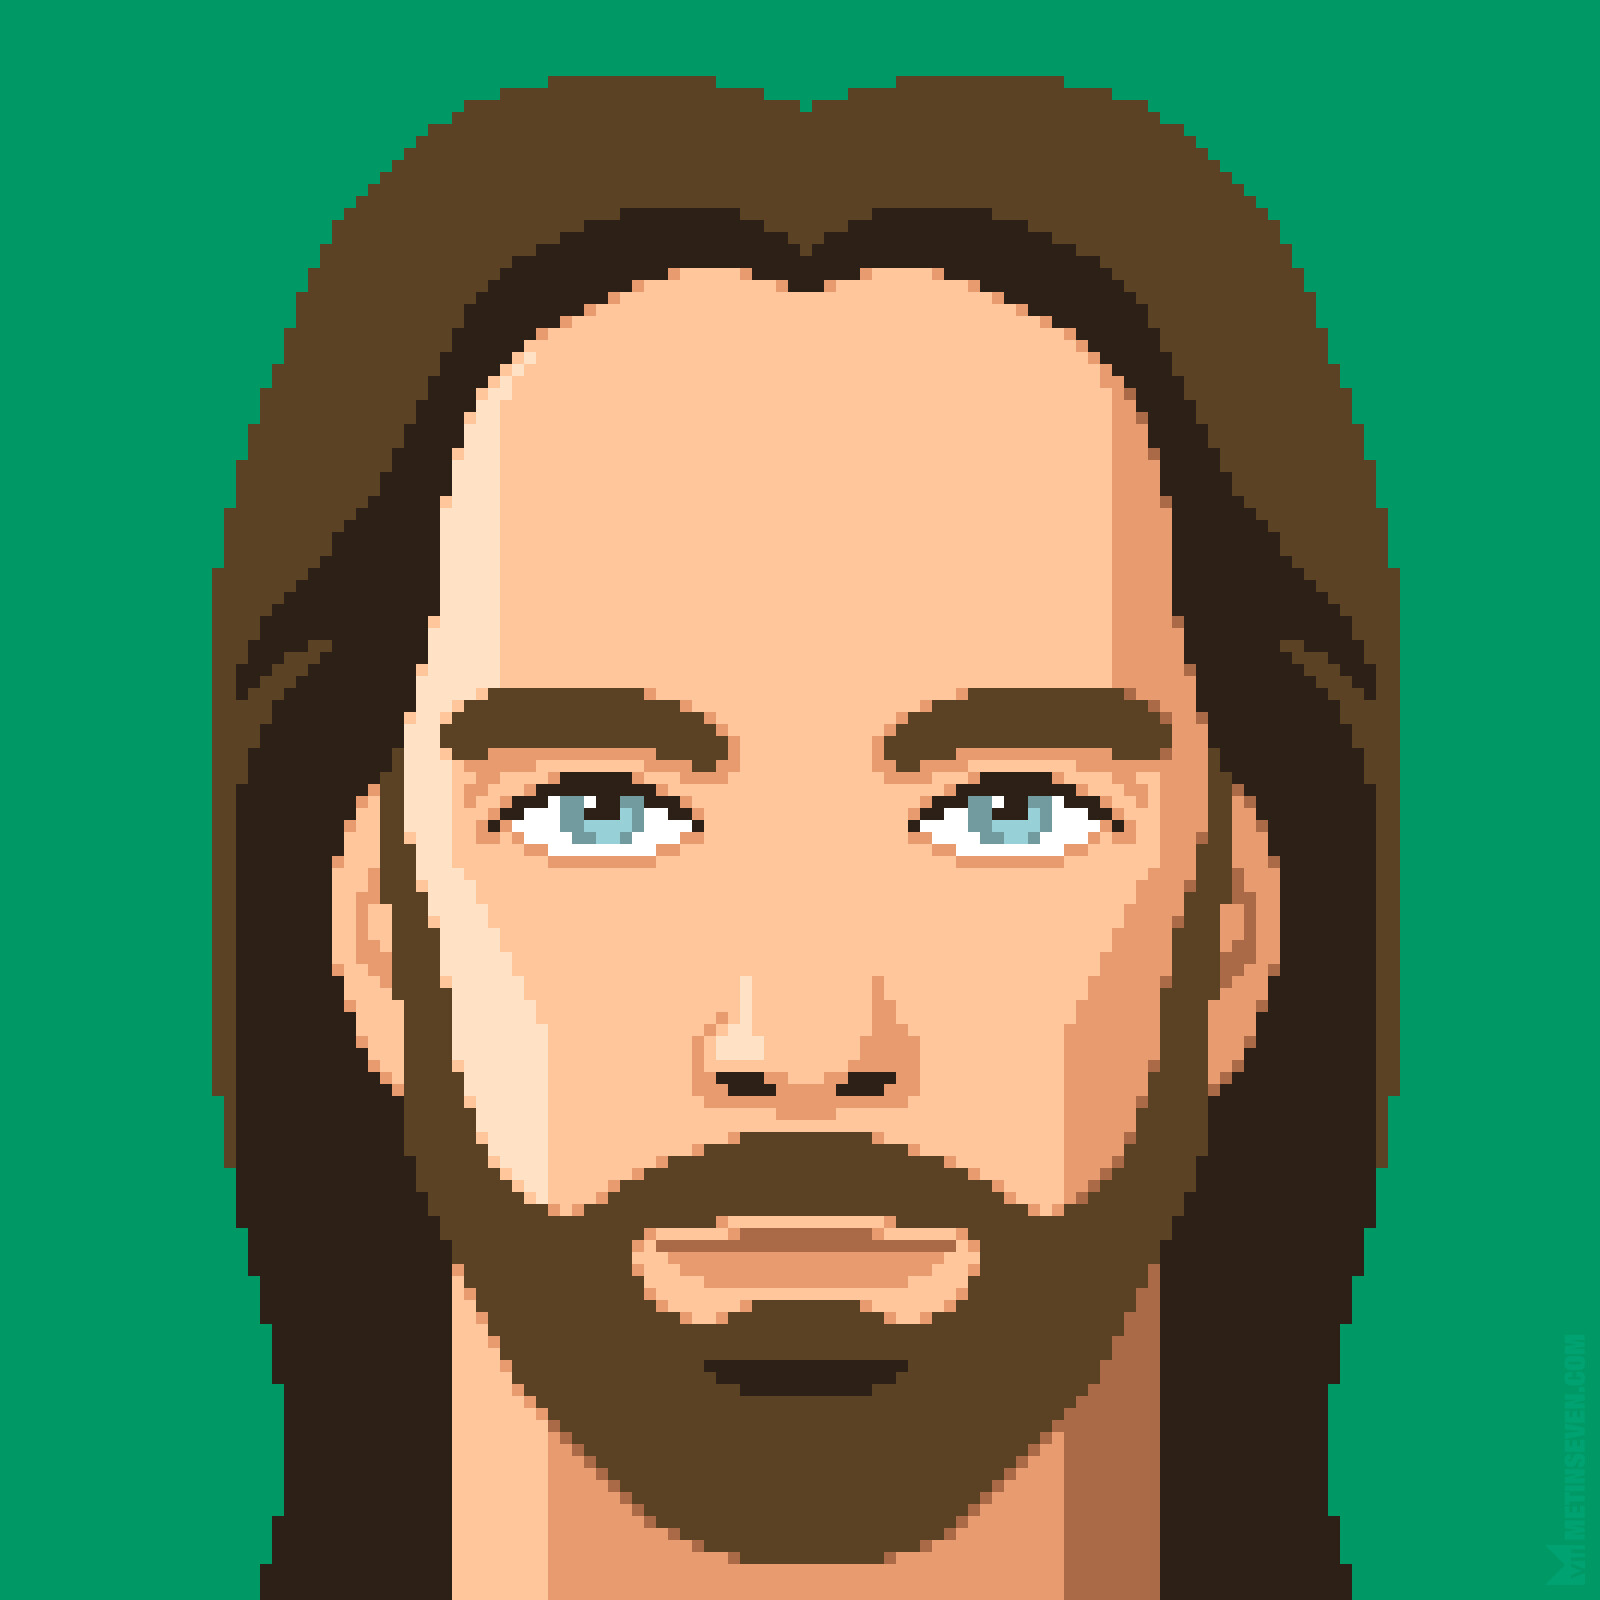 16-bit game graphics style pixel art portrait of retro gamer Billy Mitchell